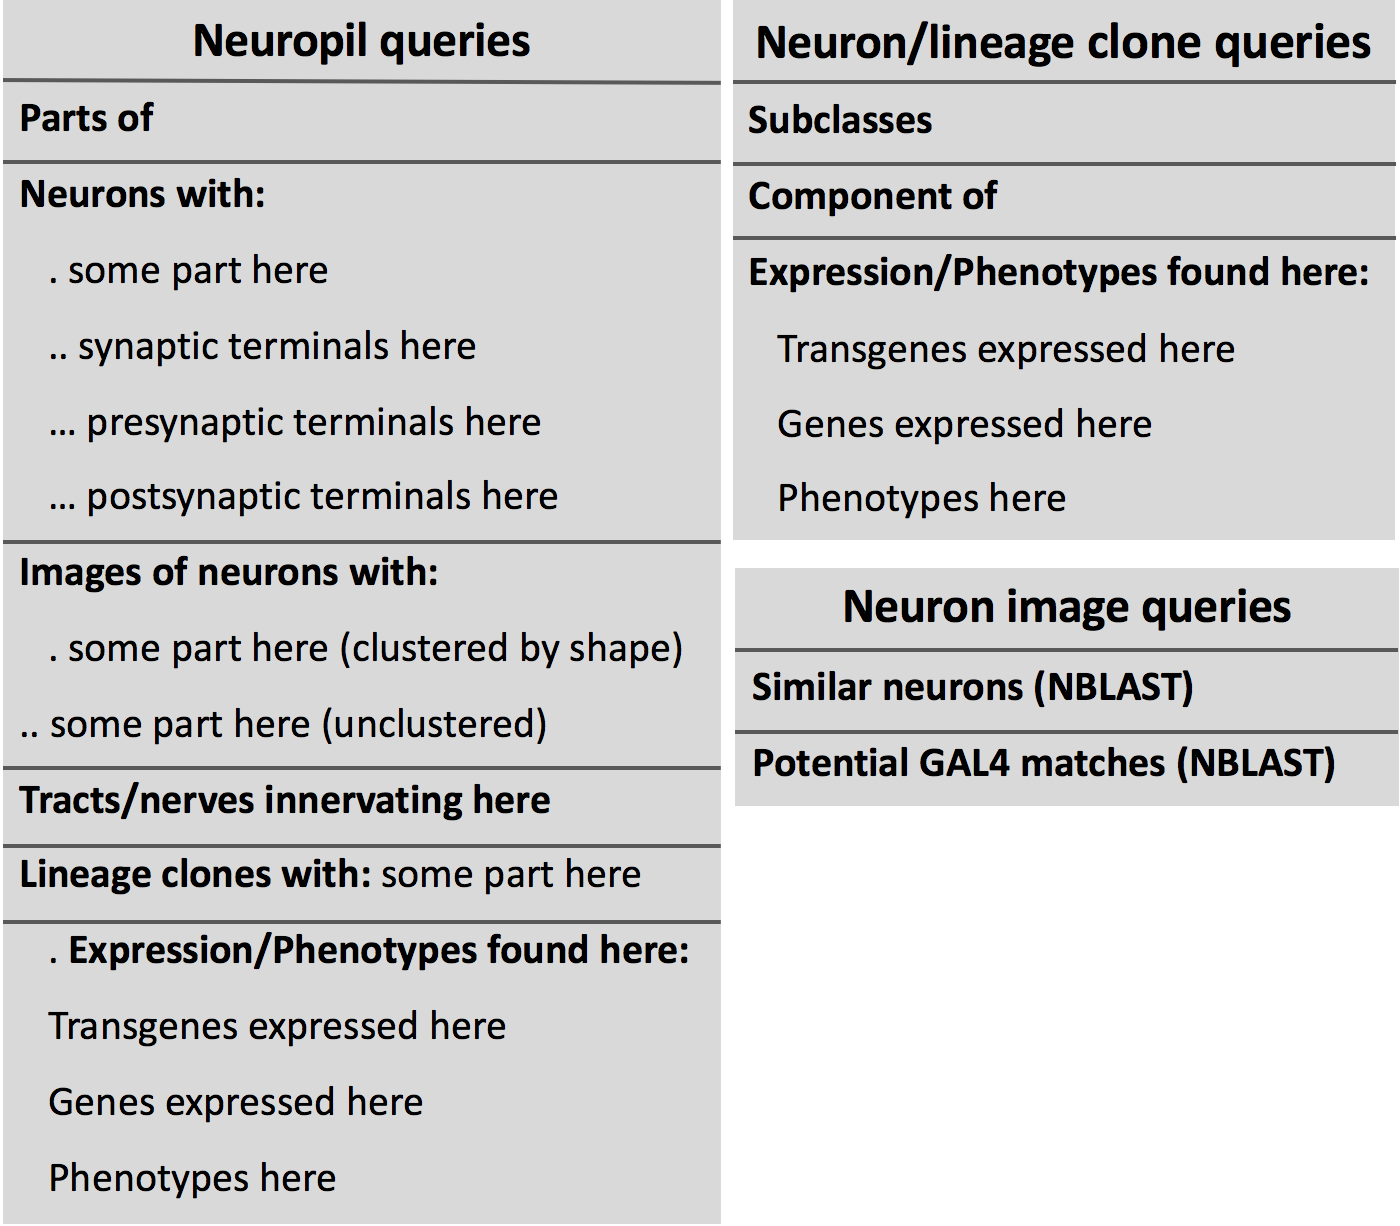 Query menus for neuropil domain and neuron